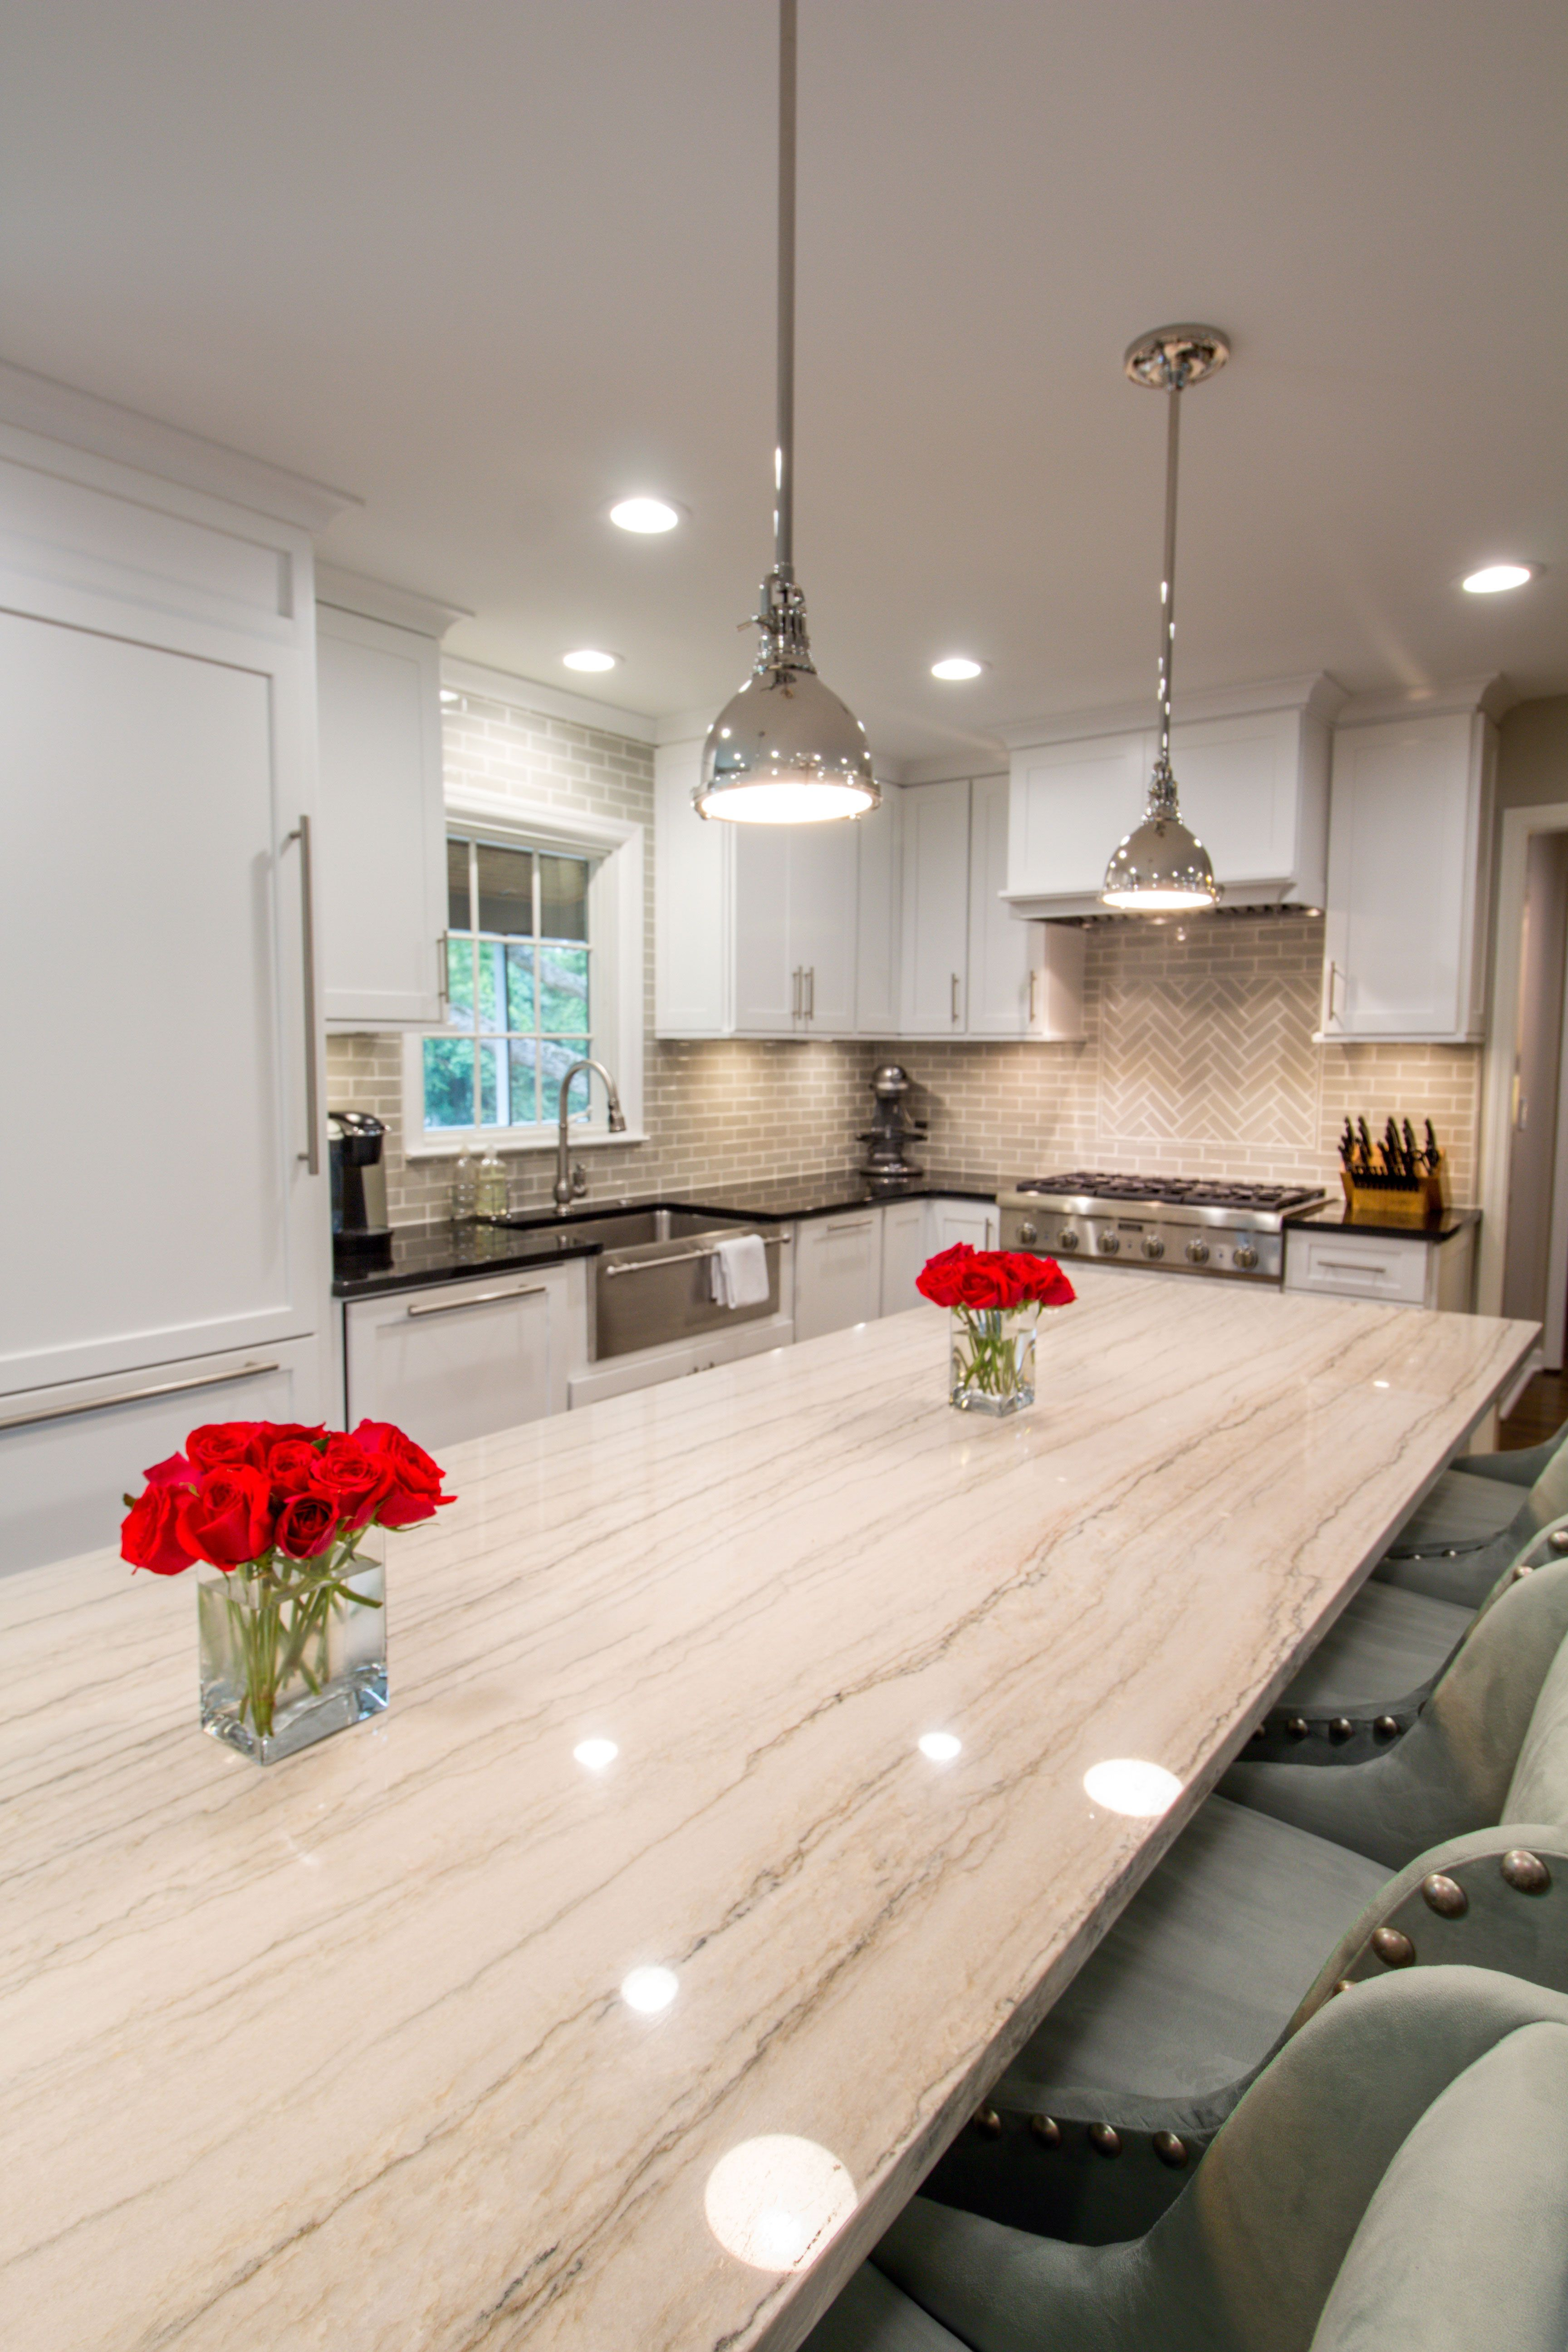 The Cost Of Remodeling Kitchen Island